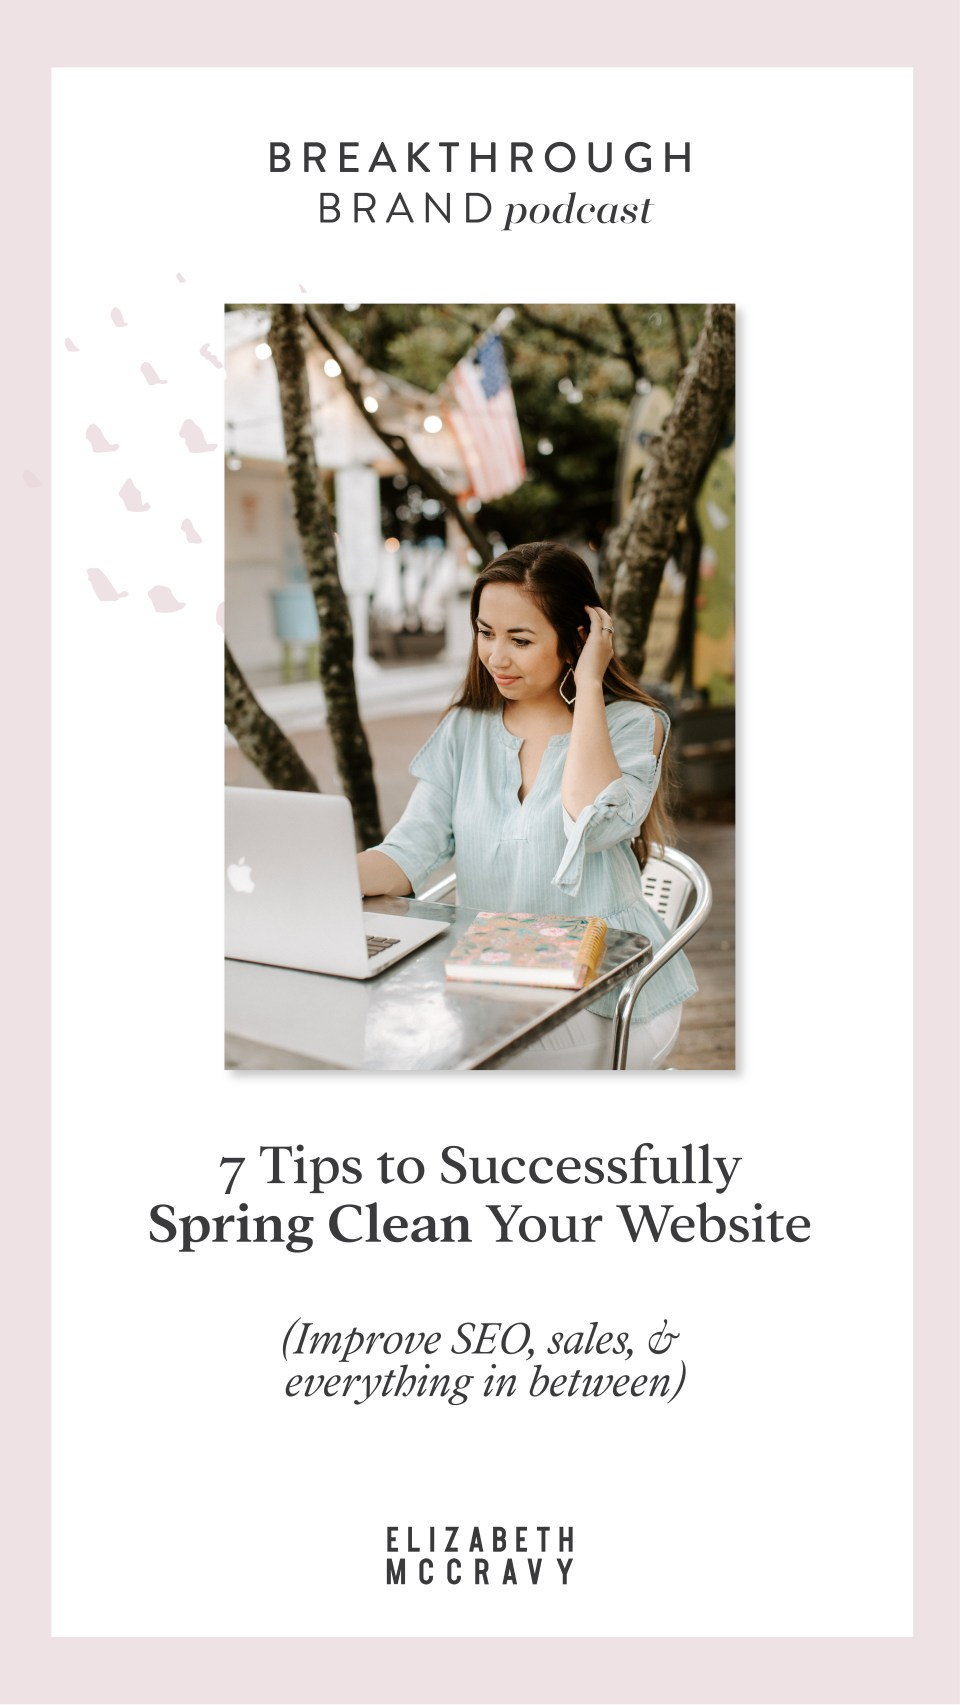 7 ways to spring clean your website: website spring cleaning checklist for online business owners - Improve SEO, sales, usability, functionality, and so much more!